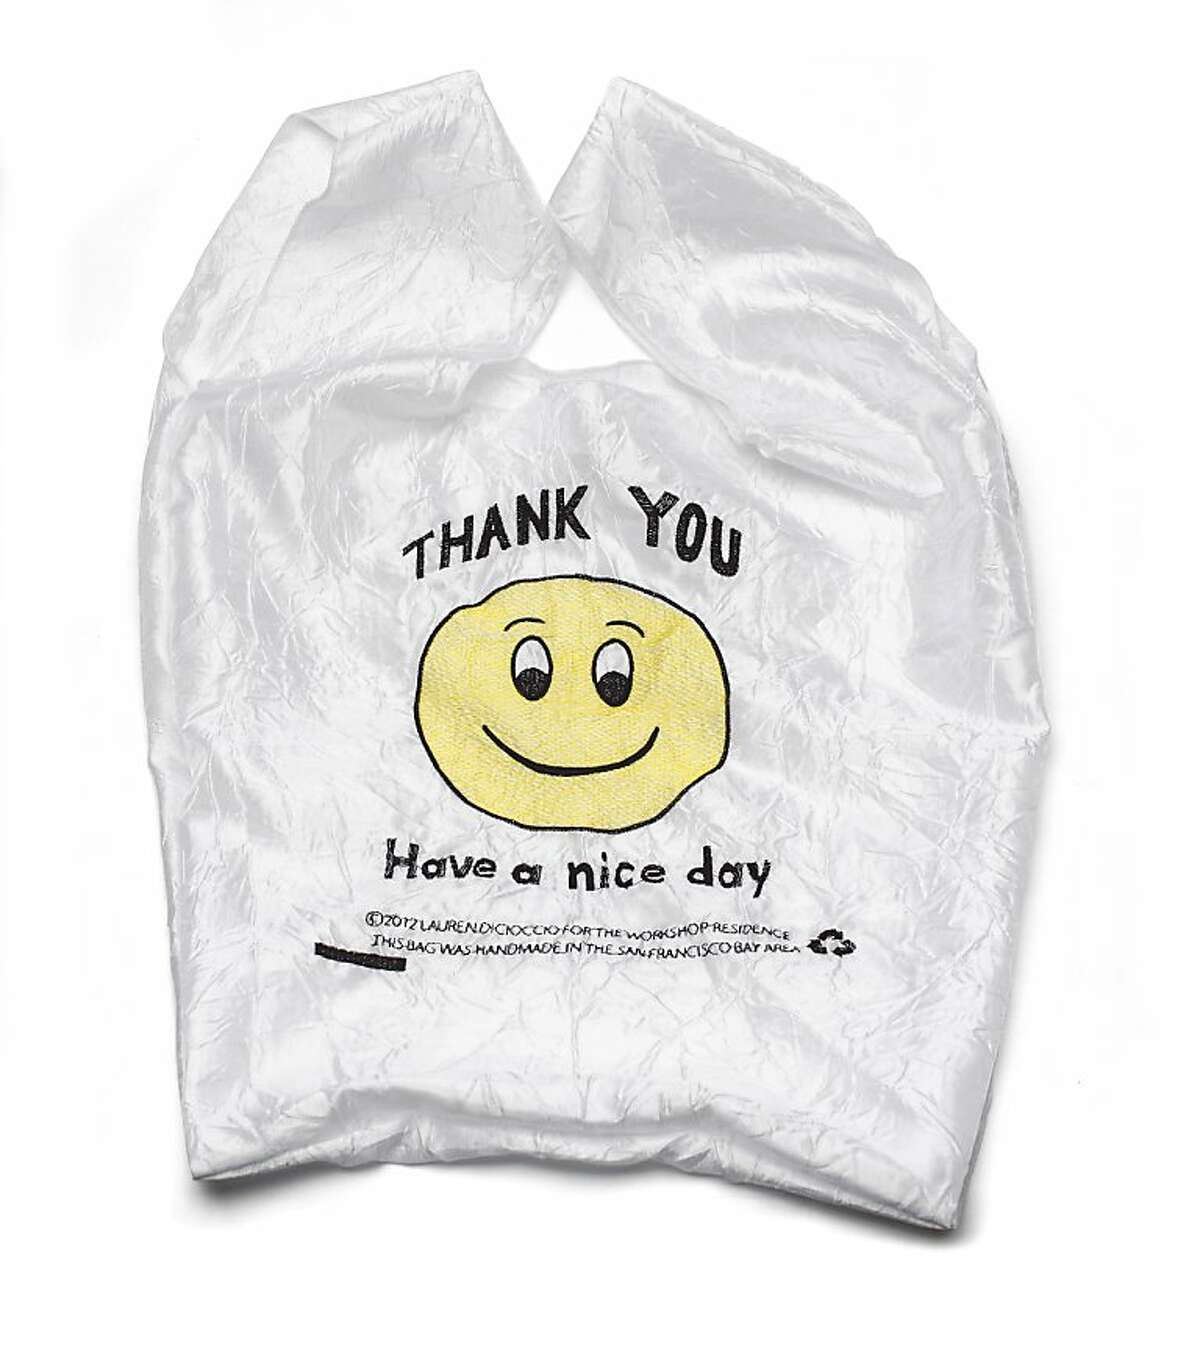 STOCKING STUFFERS: Have a nice day Smiley face Thank You bag usually found in plastic, redesigned by Lauren DiCioccio in fabric and made in San Francisco, $25, The Workshop Residence, www.theworkshopresidence.com.